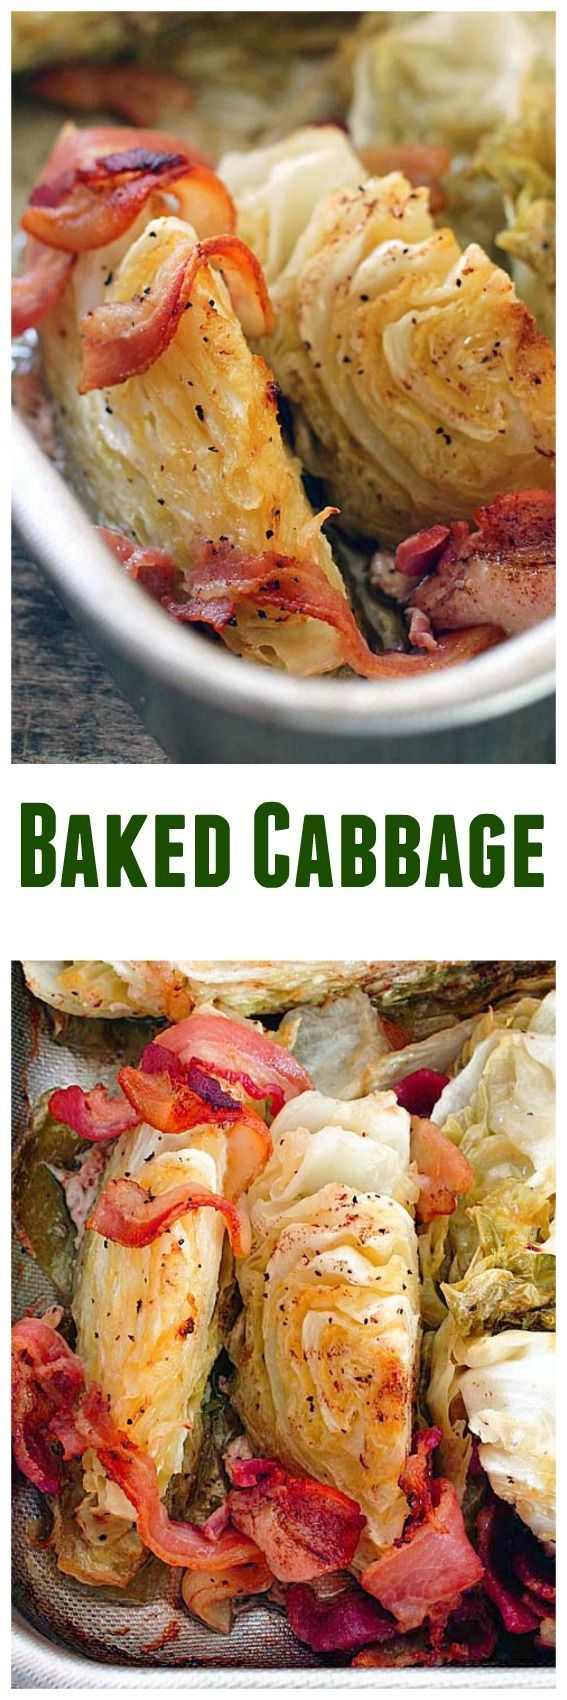 Baked Cabbage - Made in a roasting pan in the oven this is a delicious way to enjoy cabbage!  Your family will love it! (Baking Cauliflower In Oven)